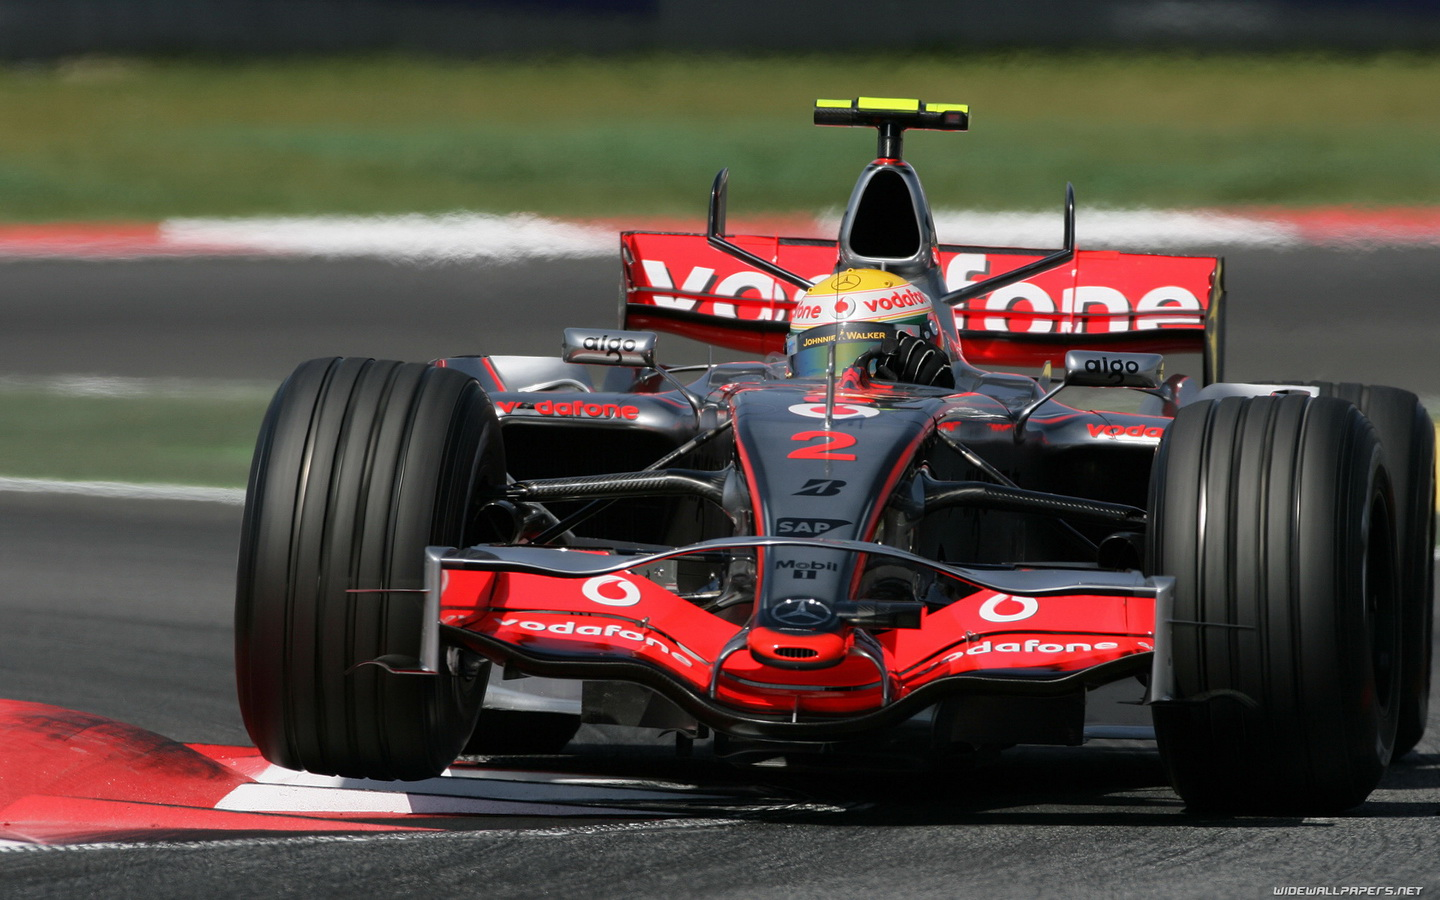 wallpaper formula 1 4 Images   Frompo 1440x900